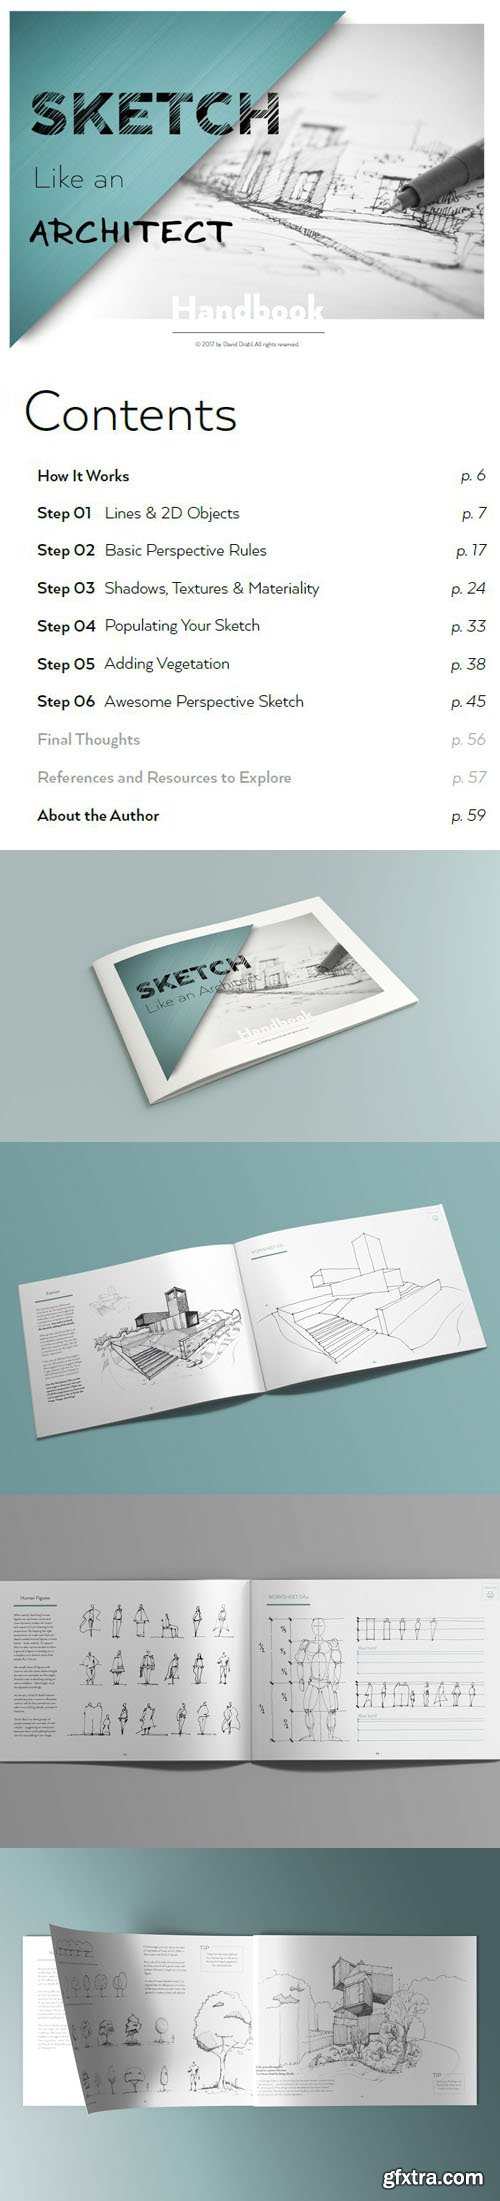 Sketch Like an Architect V2